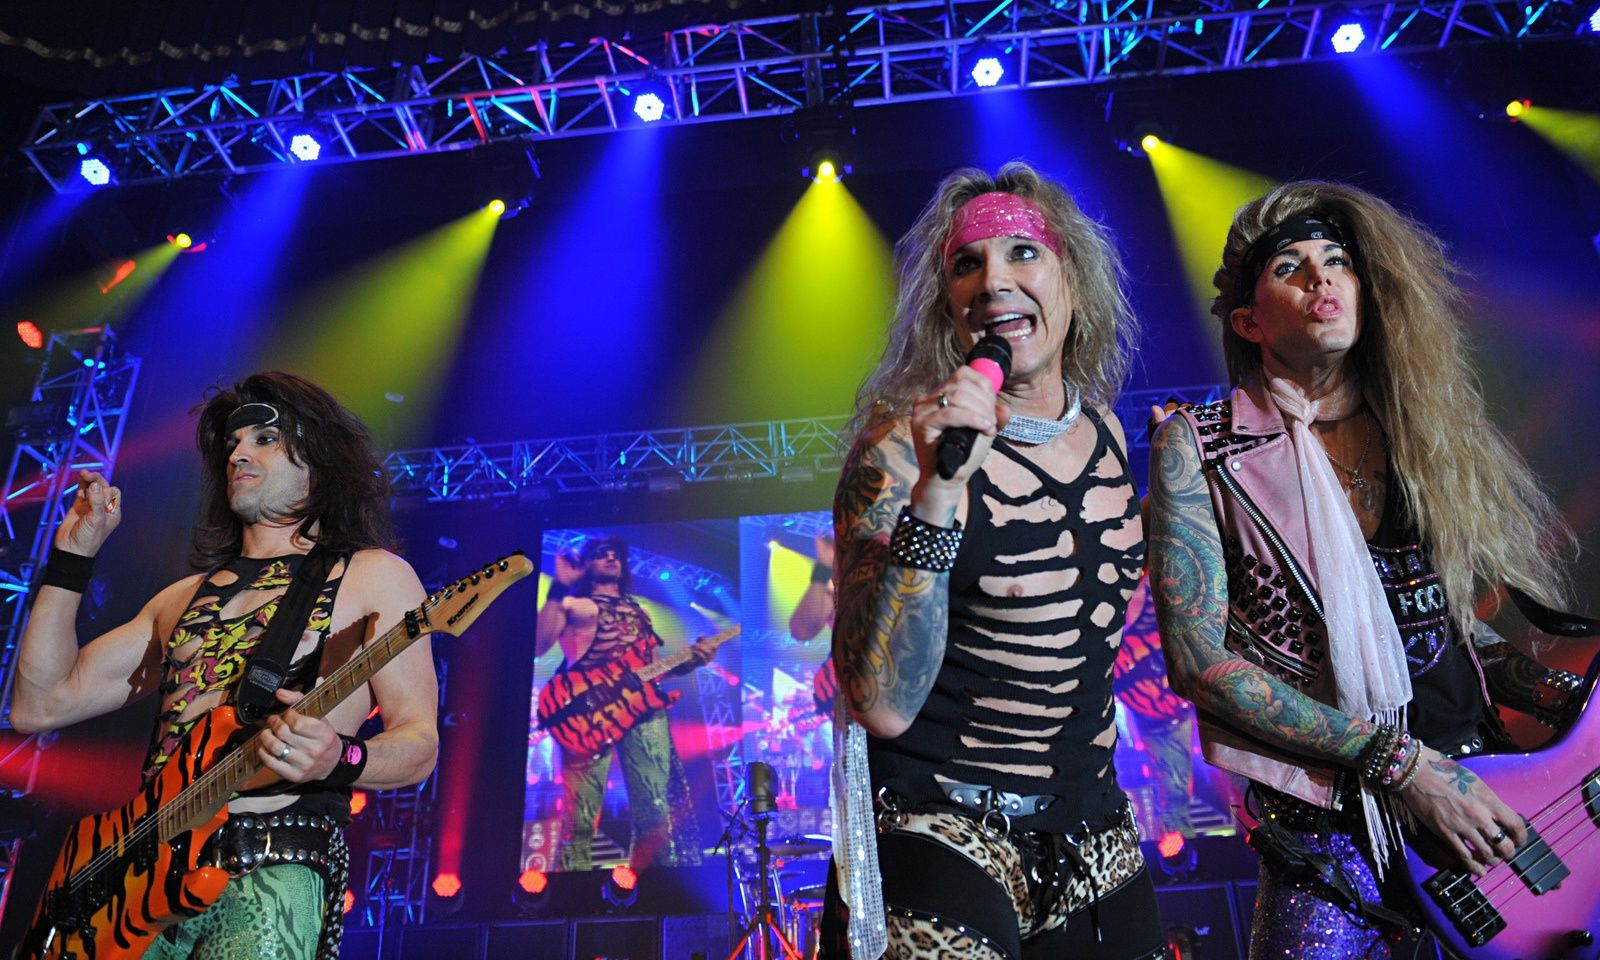 Michael Starr - Steel Panther - Photograph Neil H Kitson/Getty